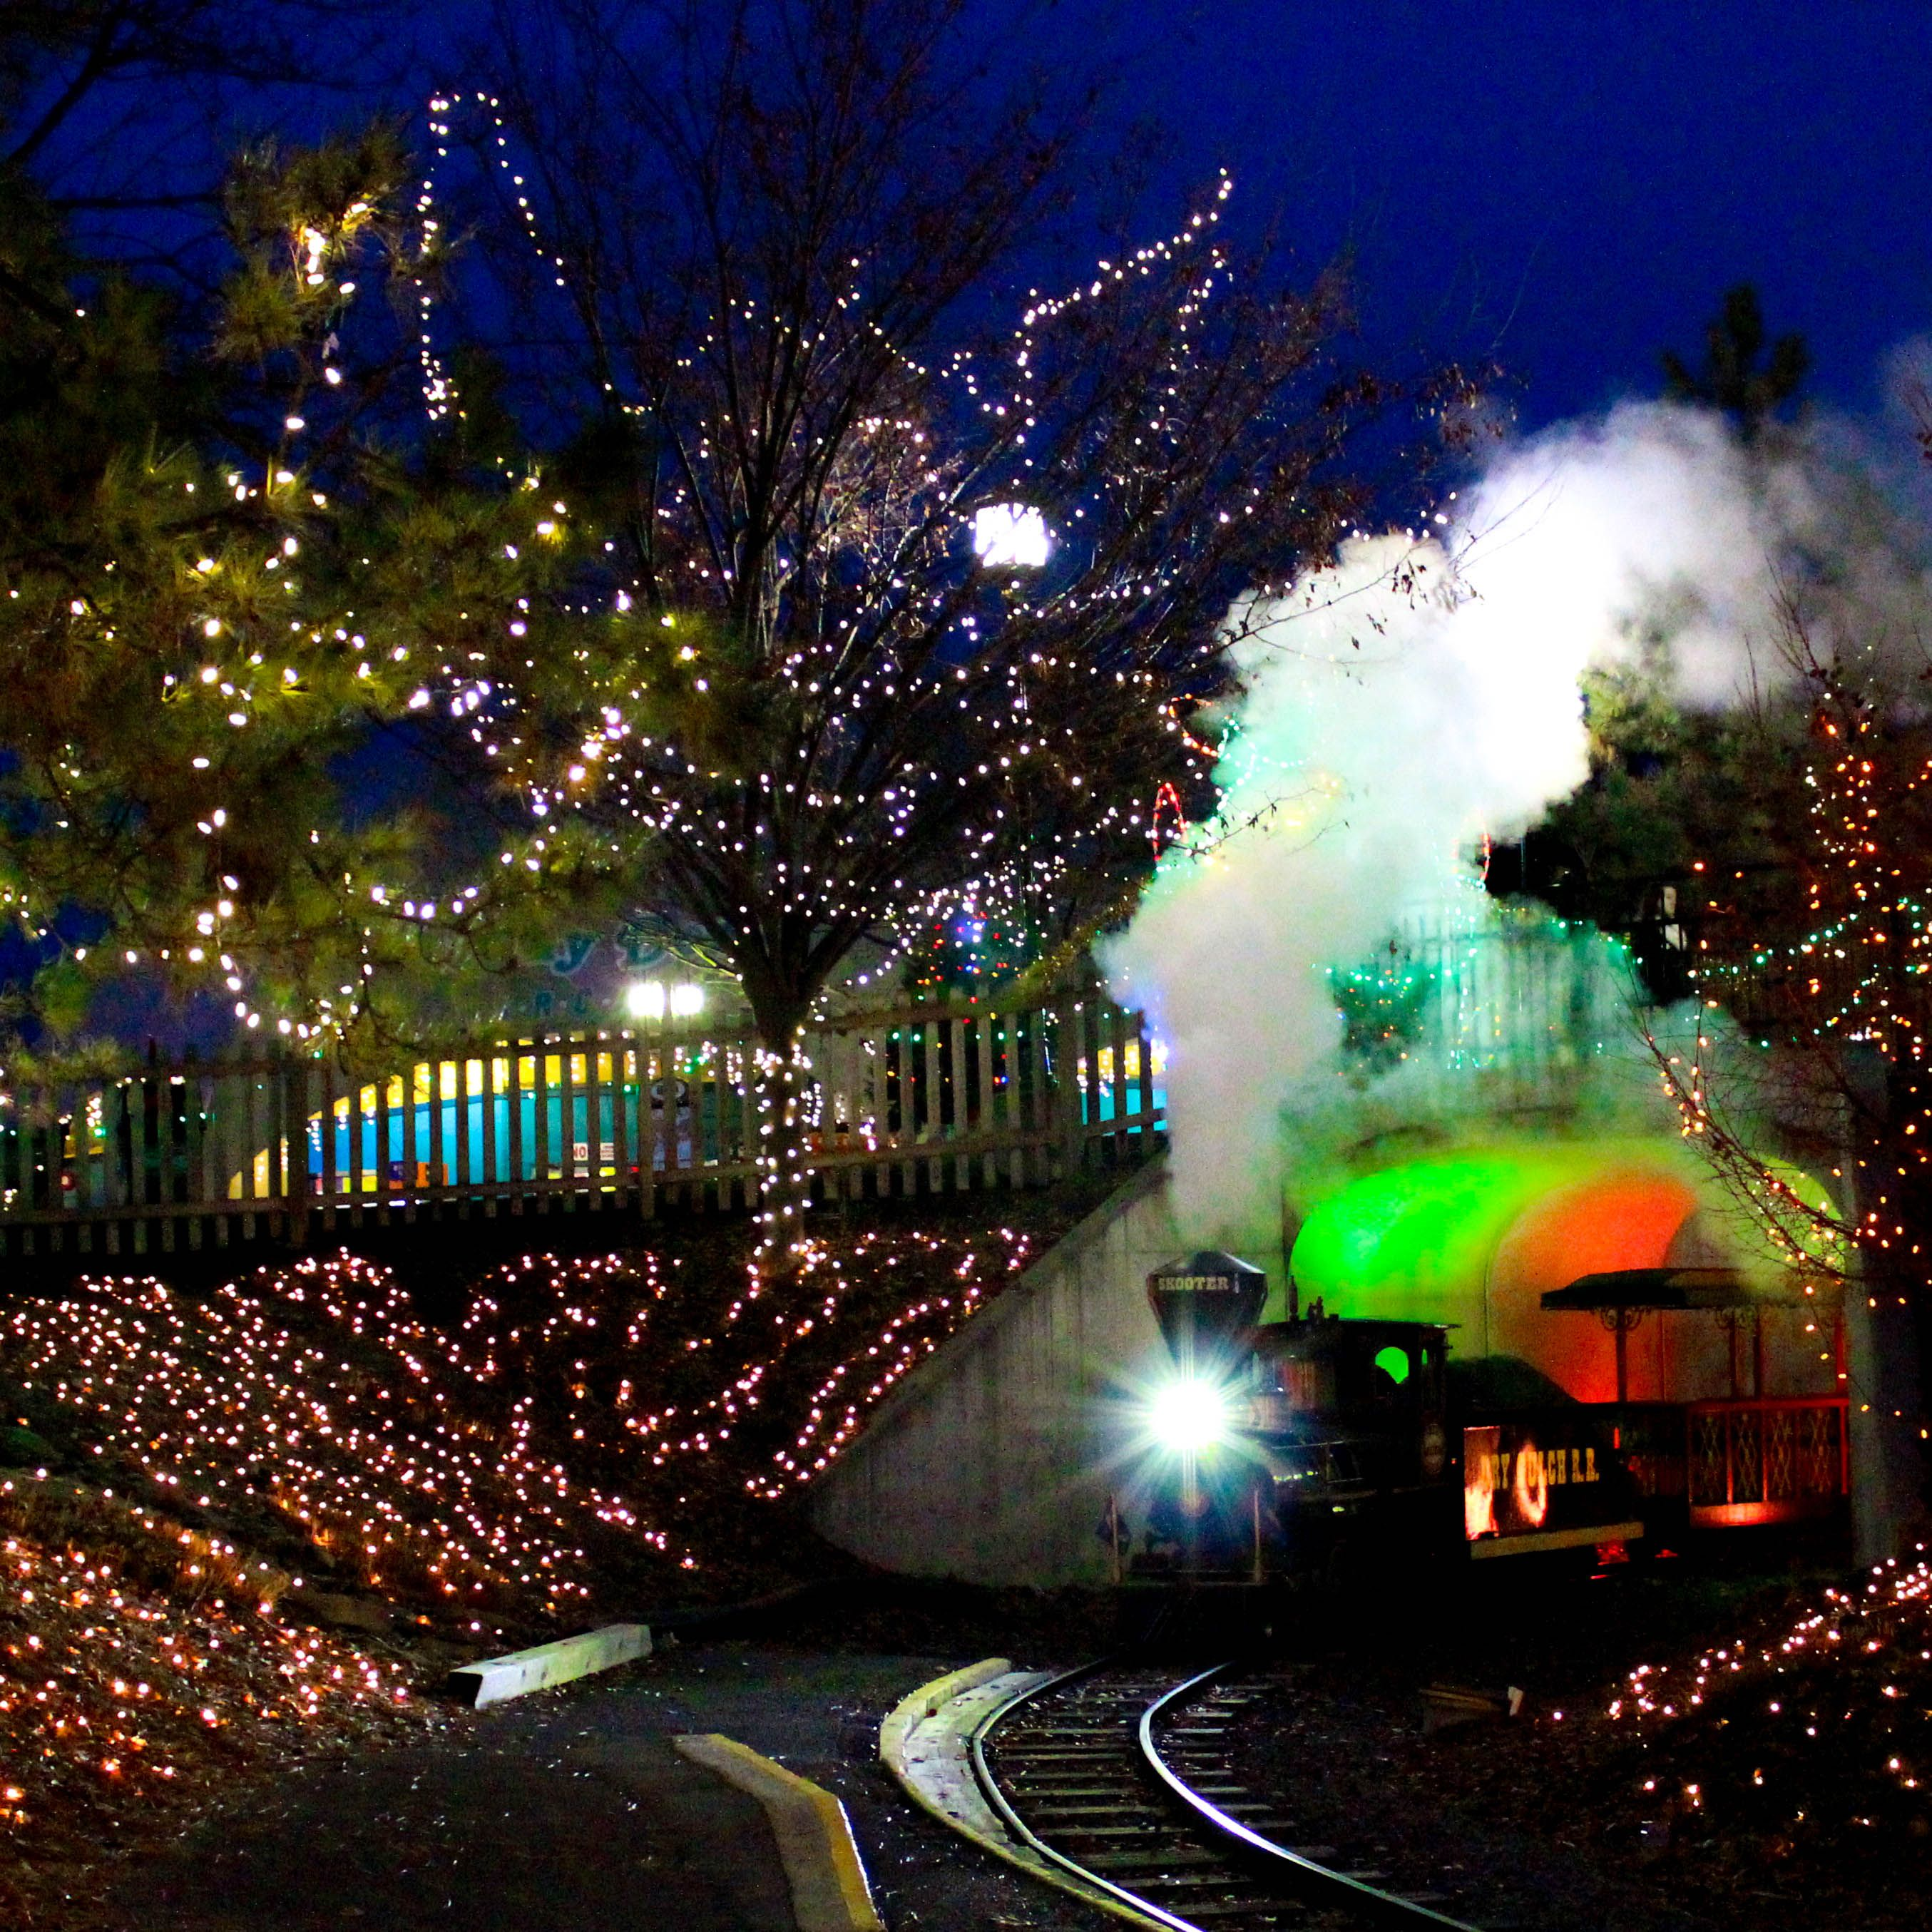 Hershey Park Christmas.4 Million Lights Are Being Added To Hersheypark Christmas